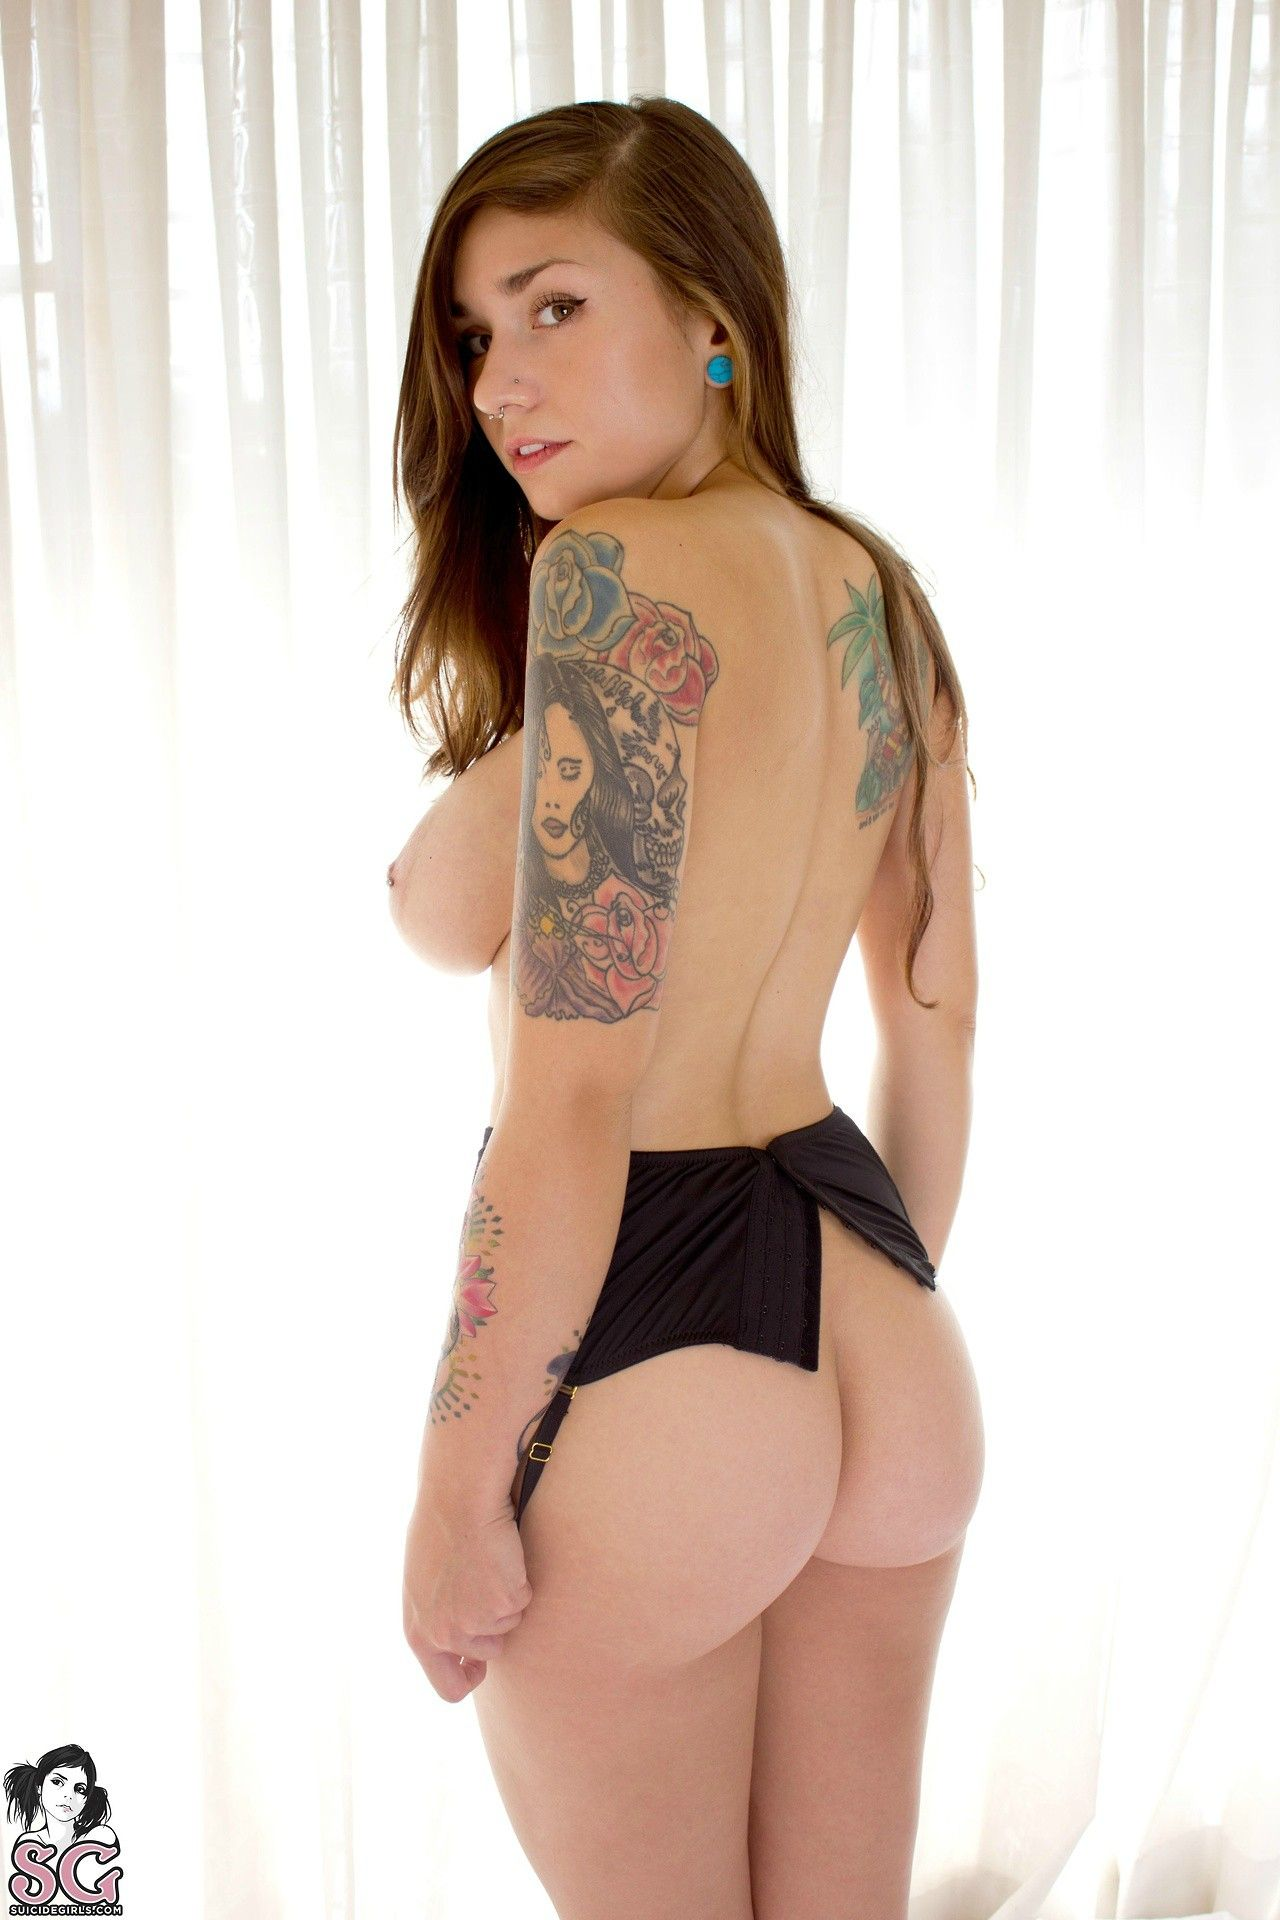 Specter reccomend Suicide girls butt naked